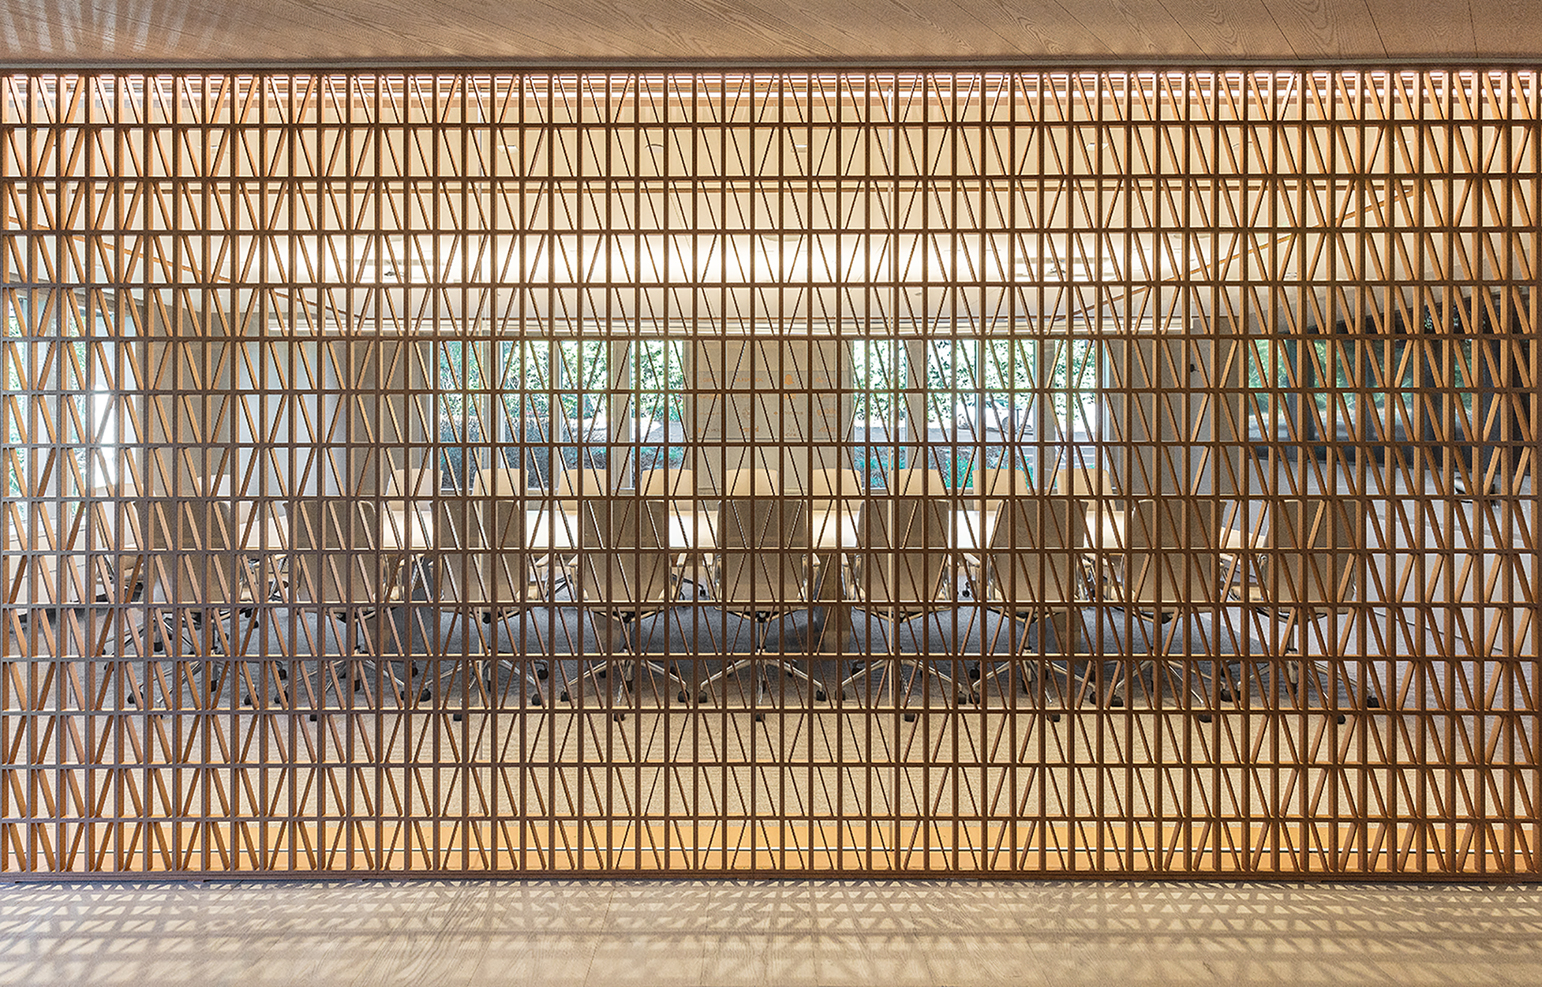 Bronze screens between conference rooms and corridors are backlit to create a play of light and shadow.